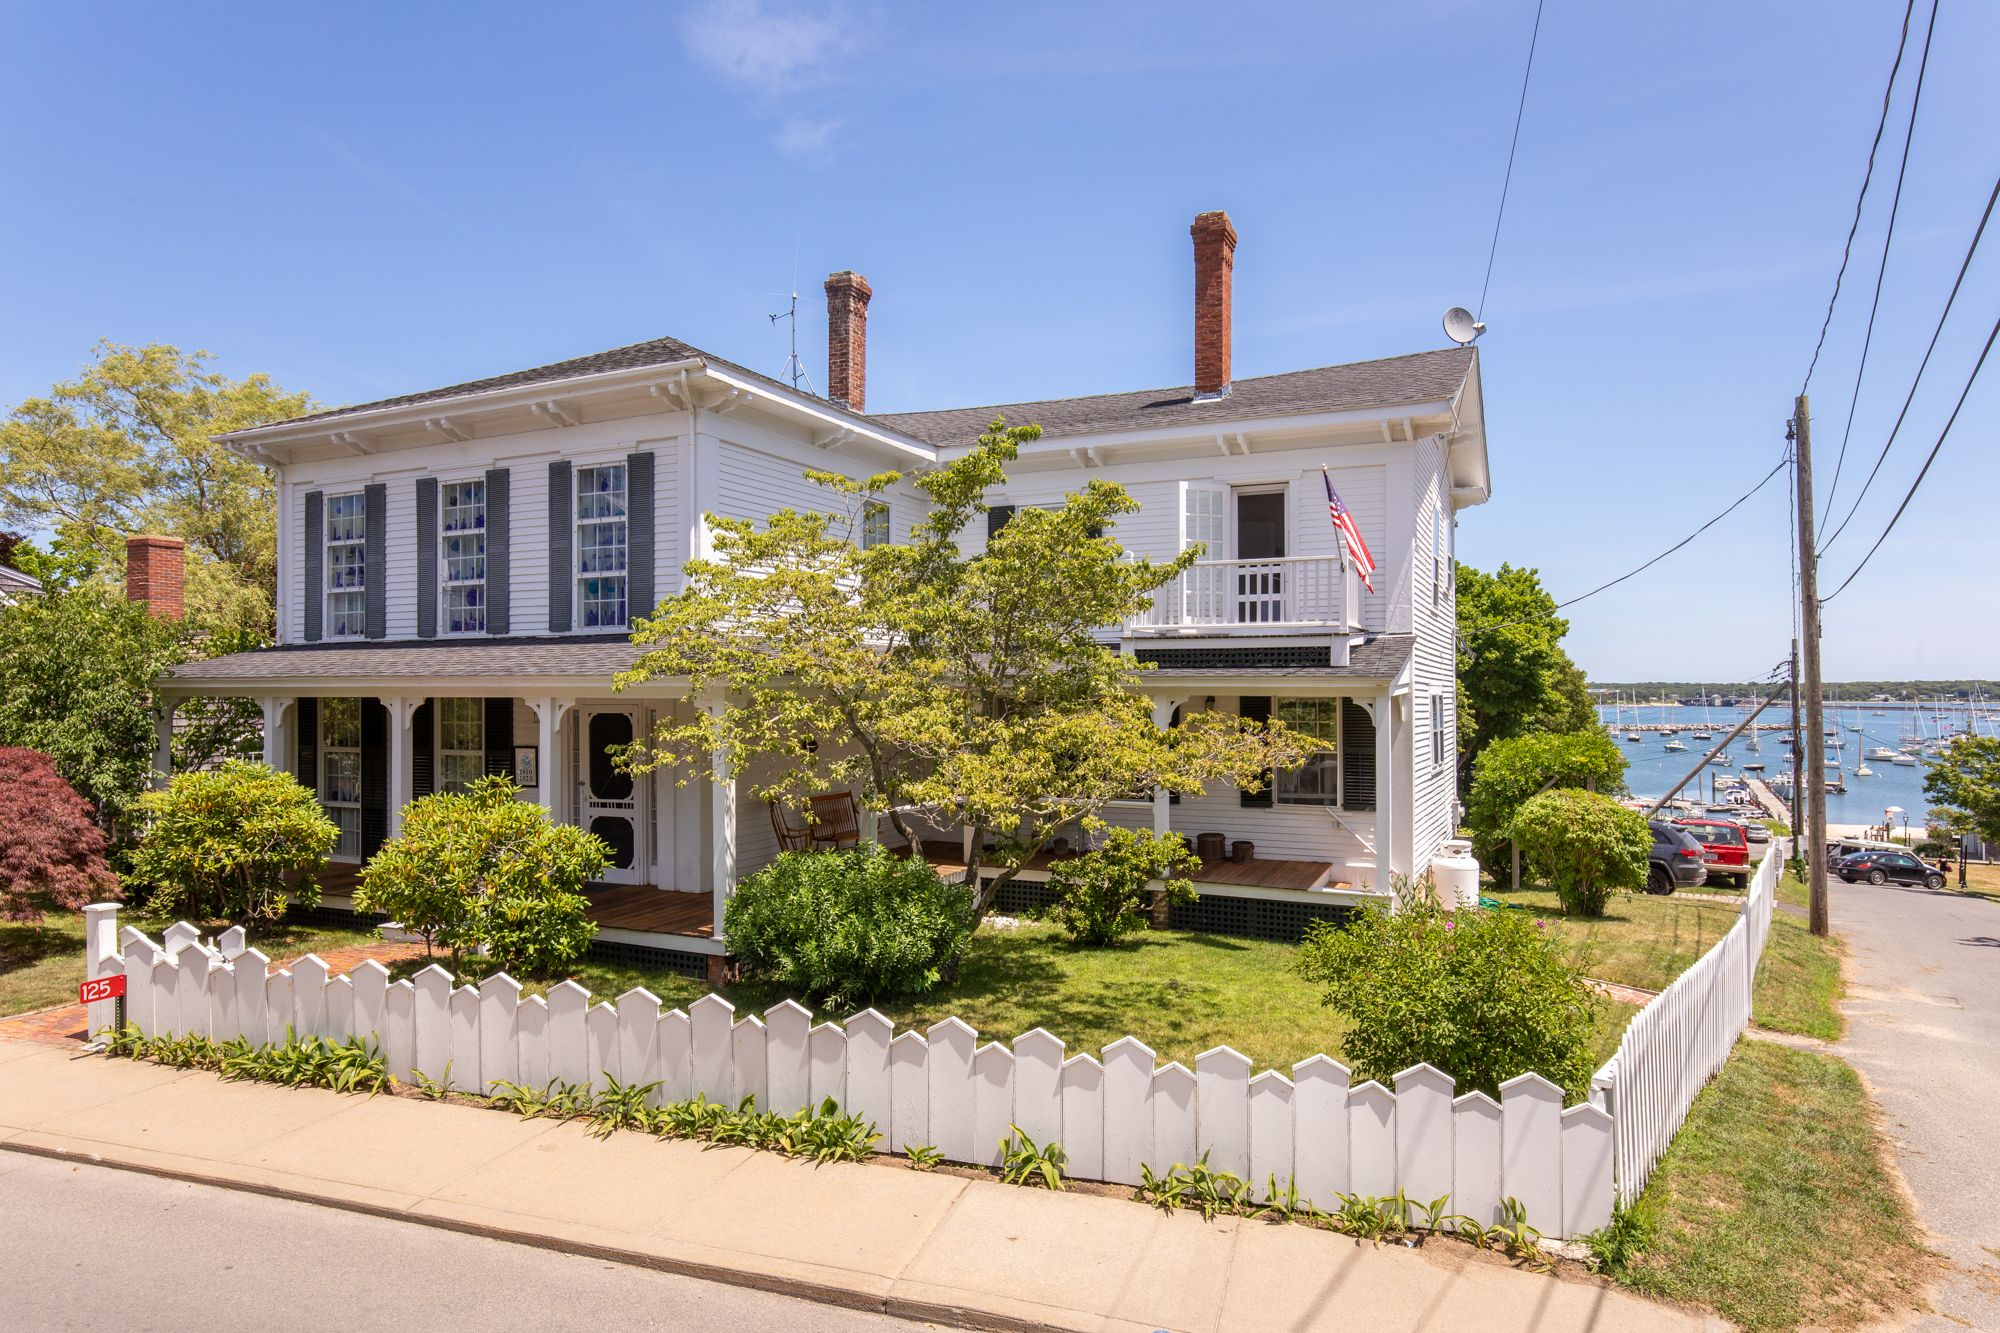 125 Main Street Vineyard Haven Photo 1